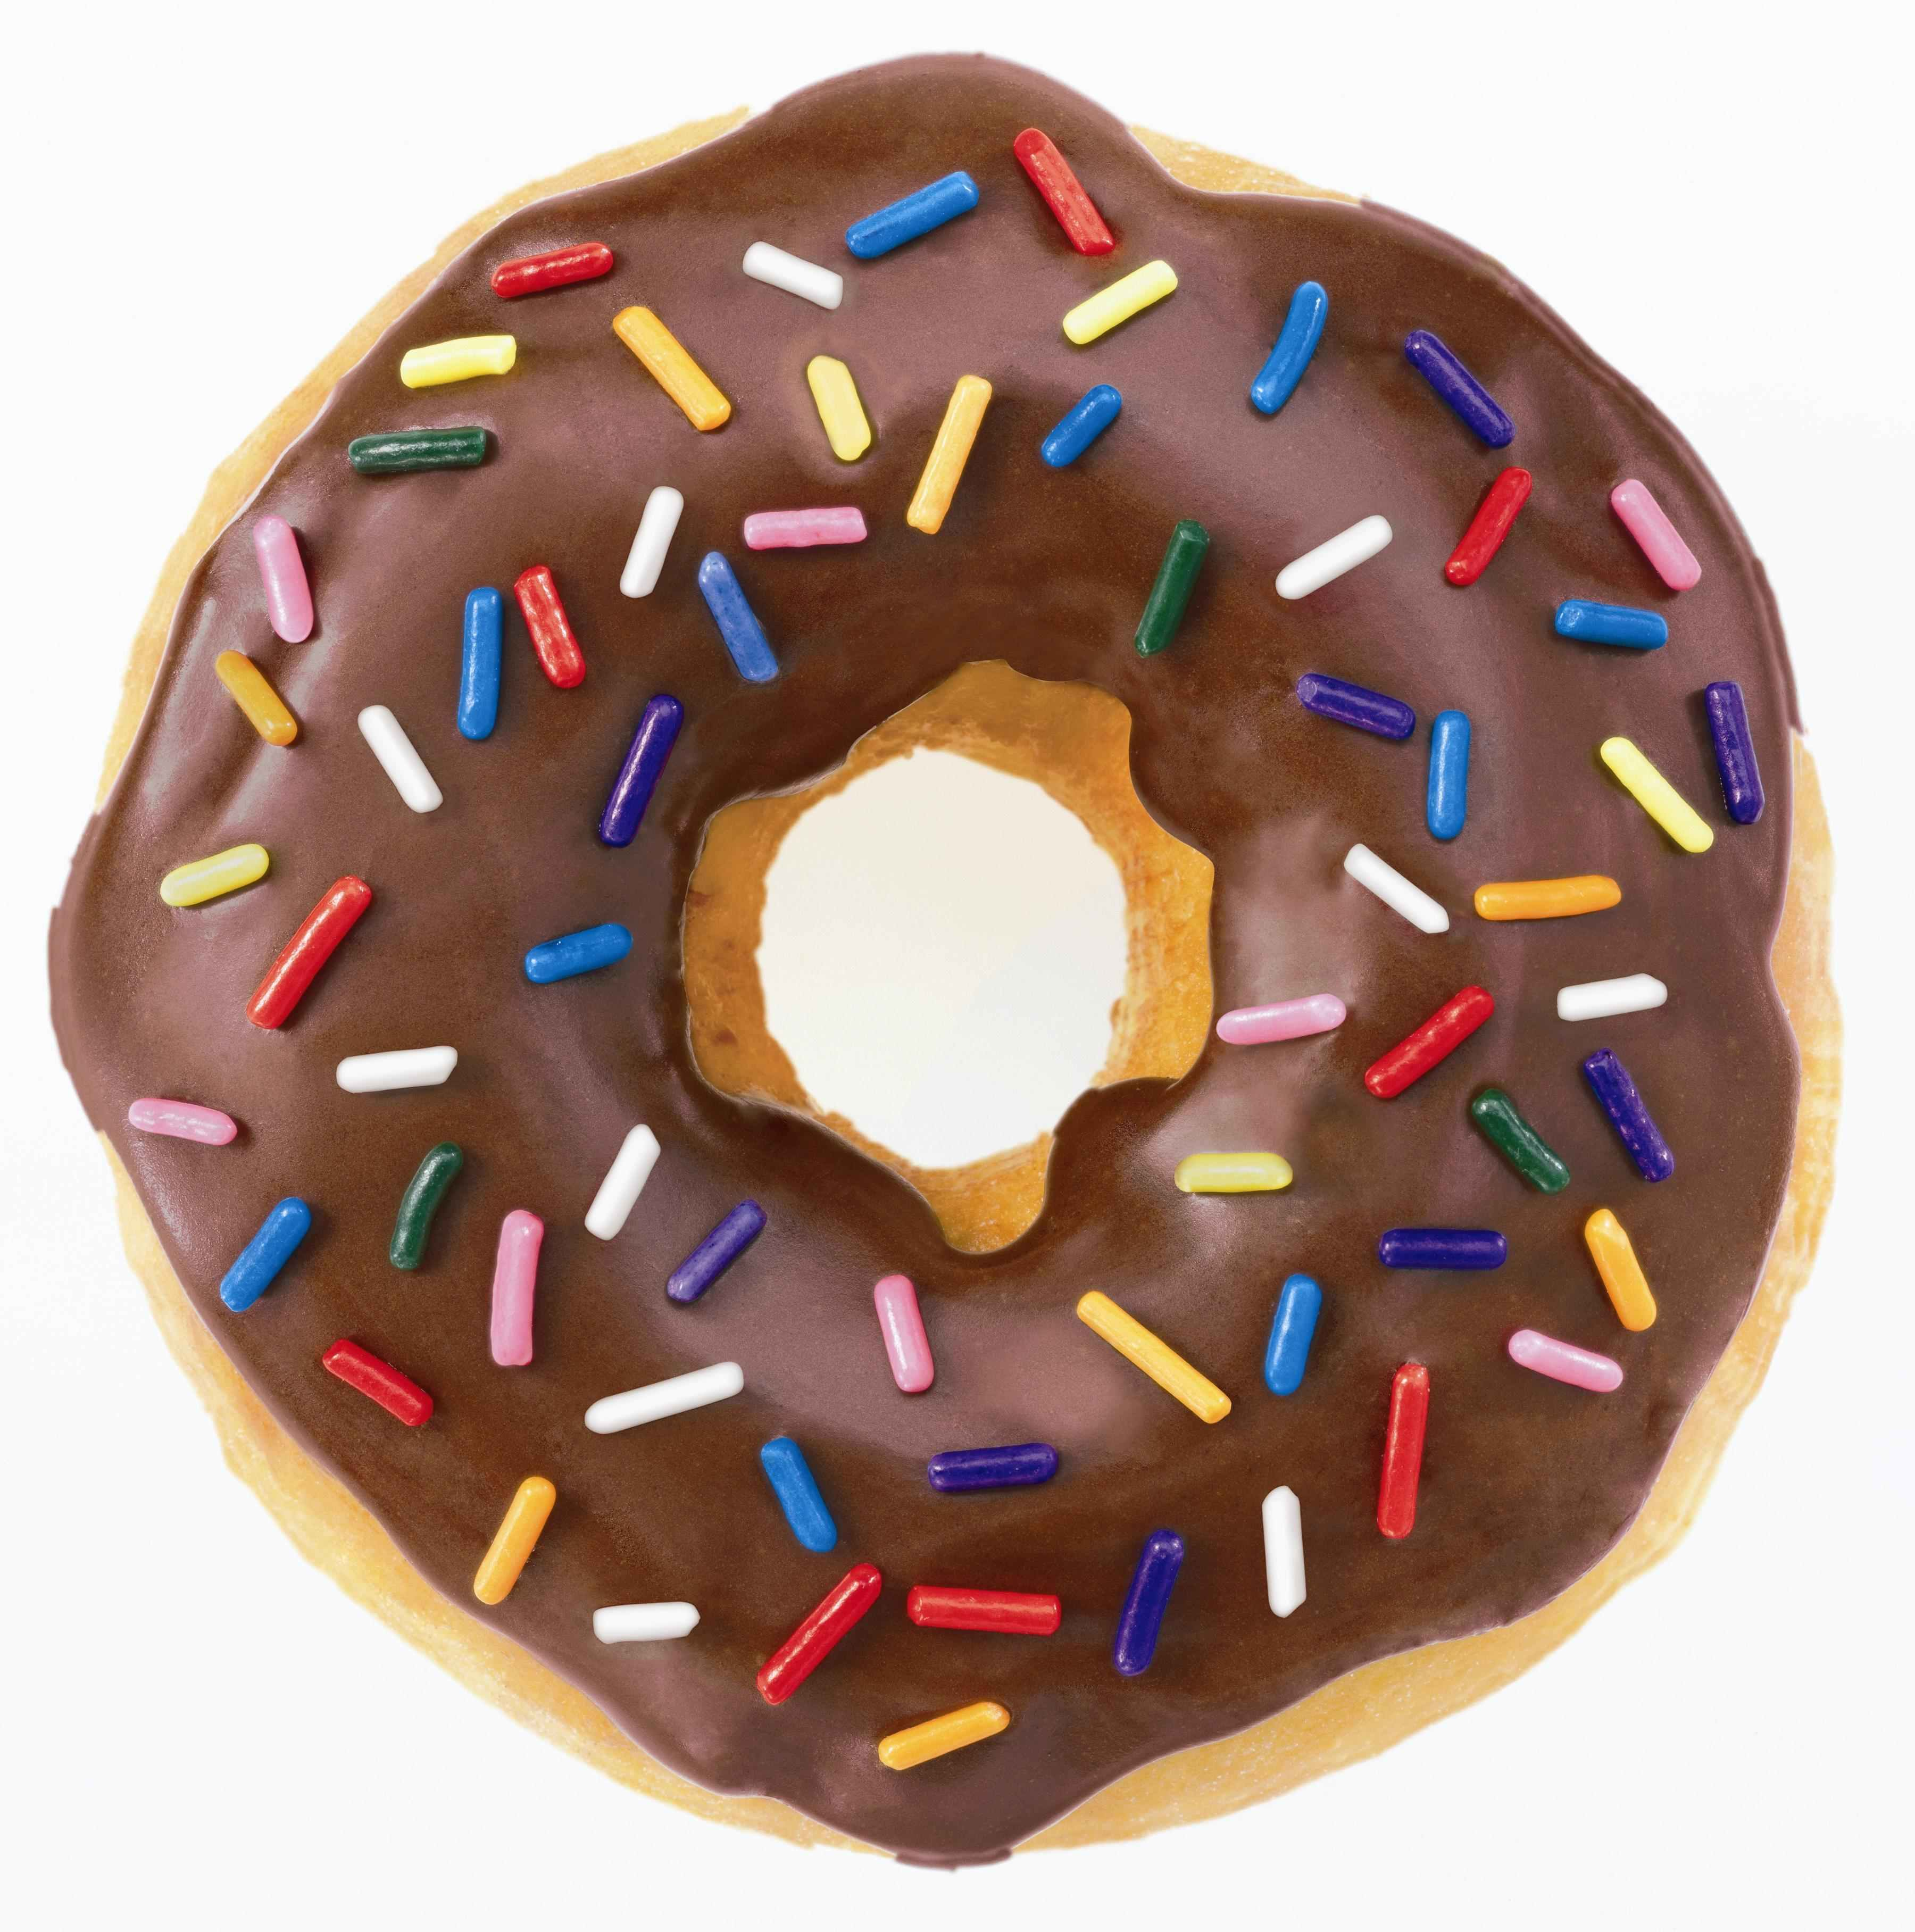 Donut clipart sprinkled donut. Free picture download clip